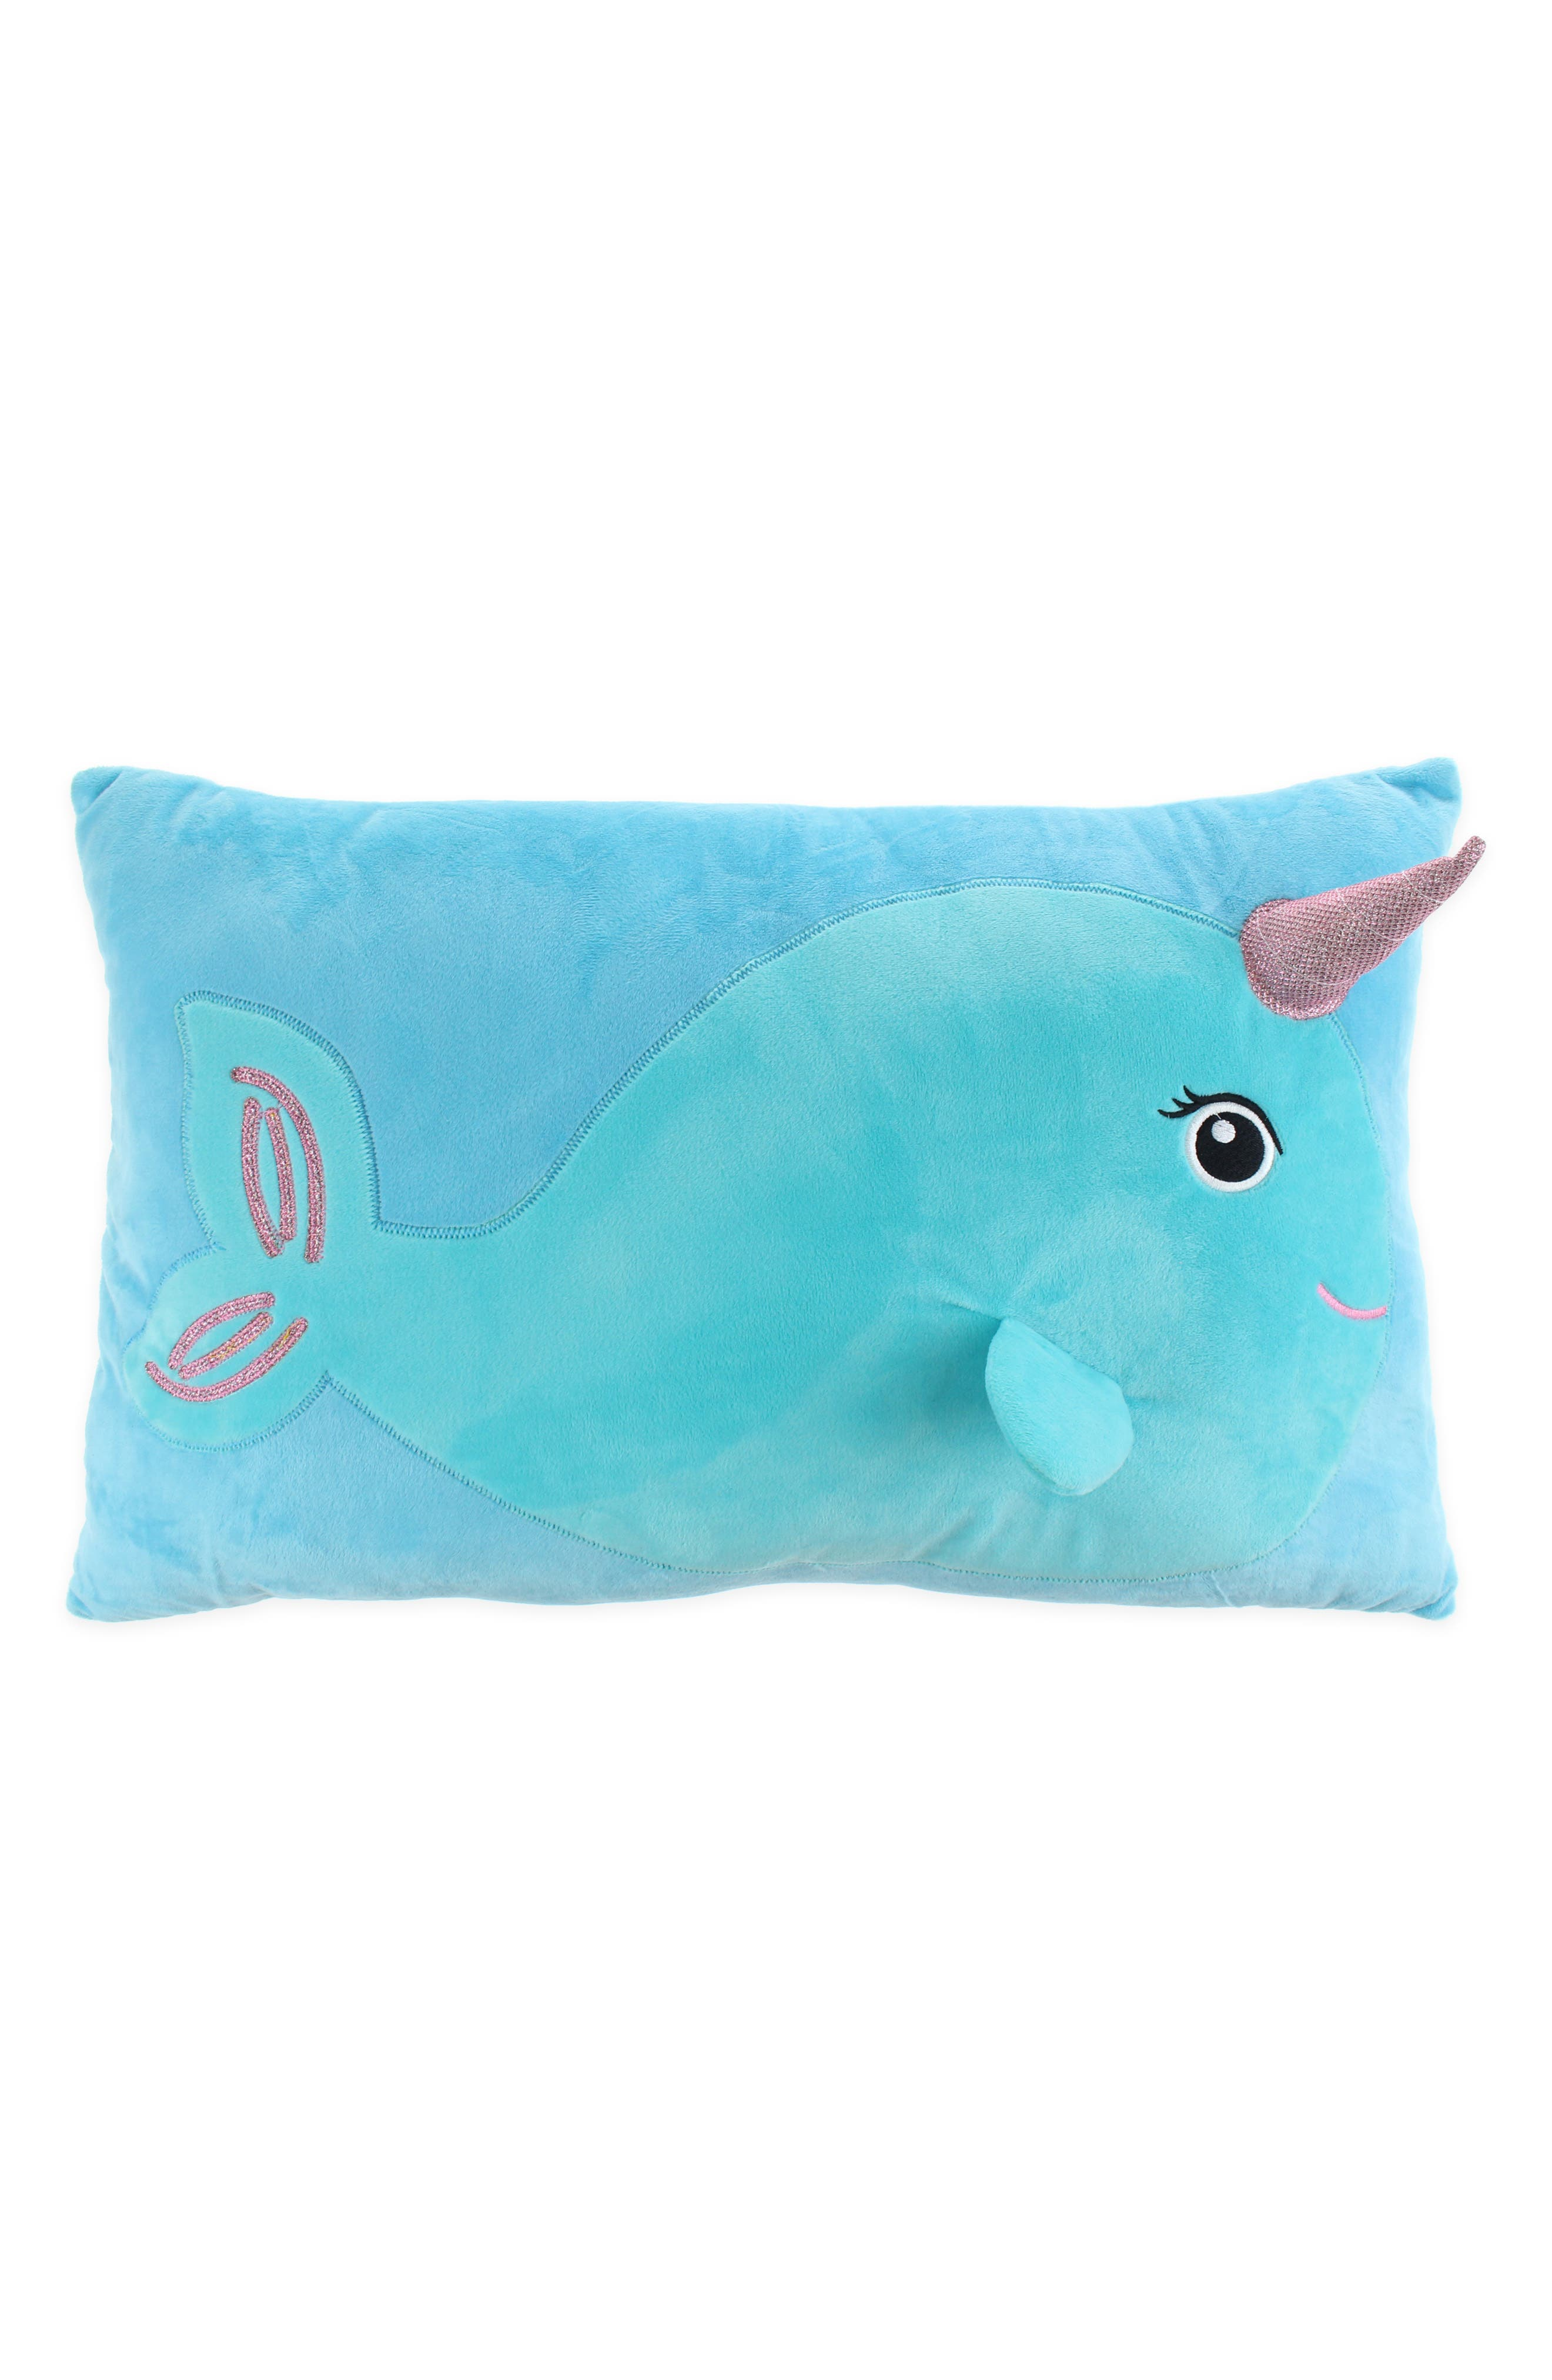 Narwhal Throw Pillow,                             Main thumbnail 1, color,                             BLUE COMBO